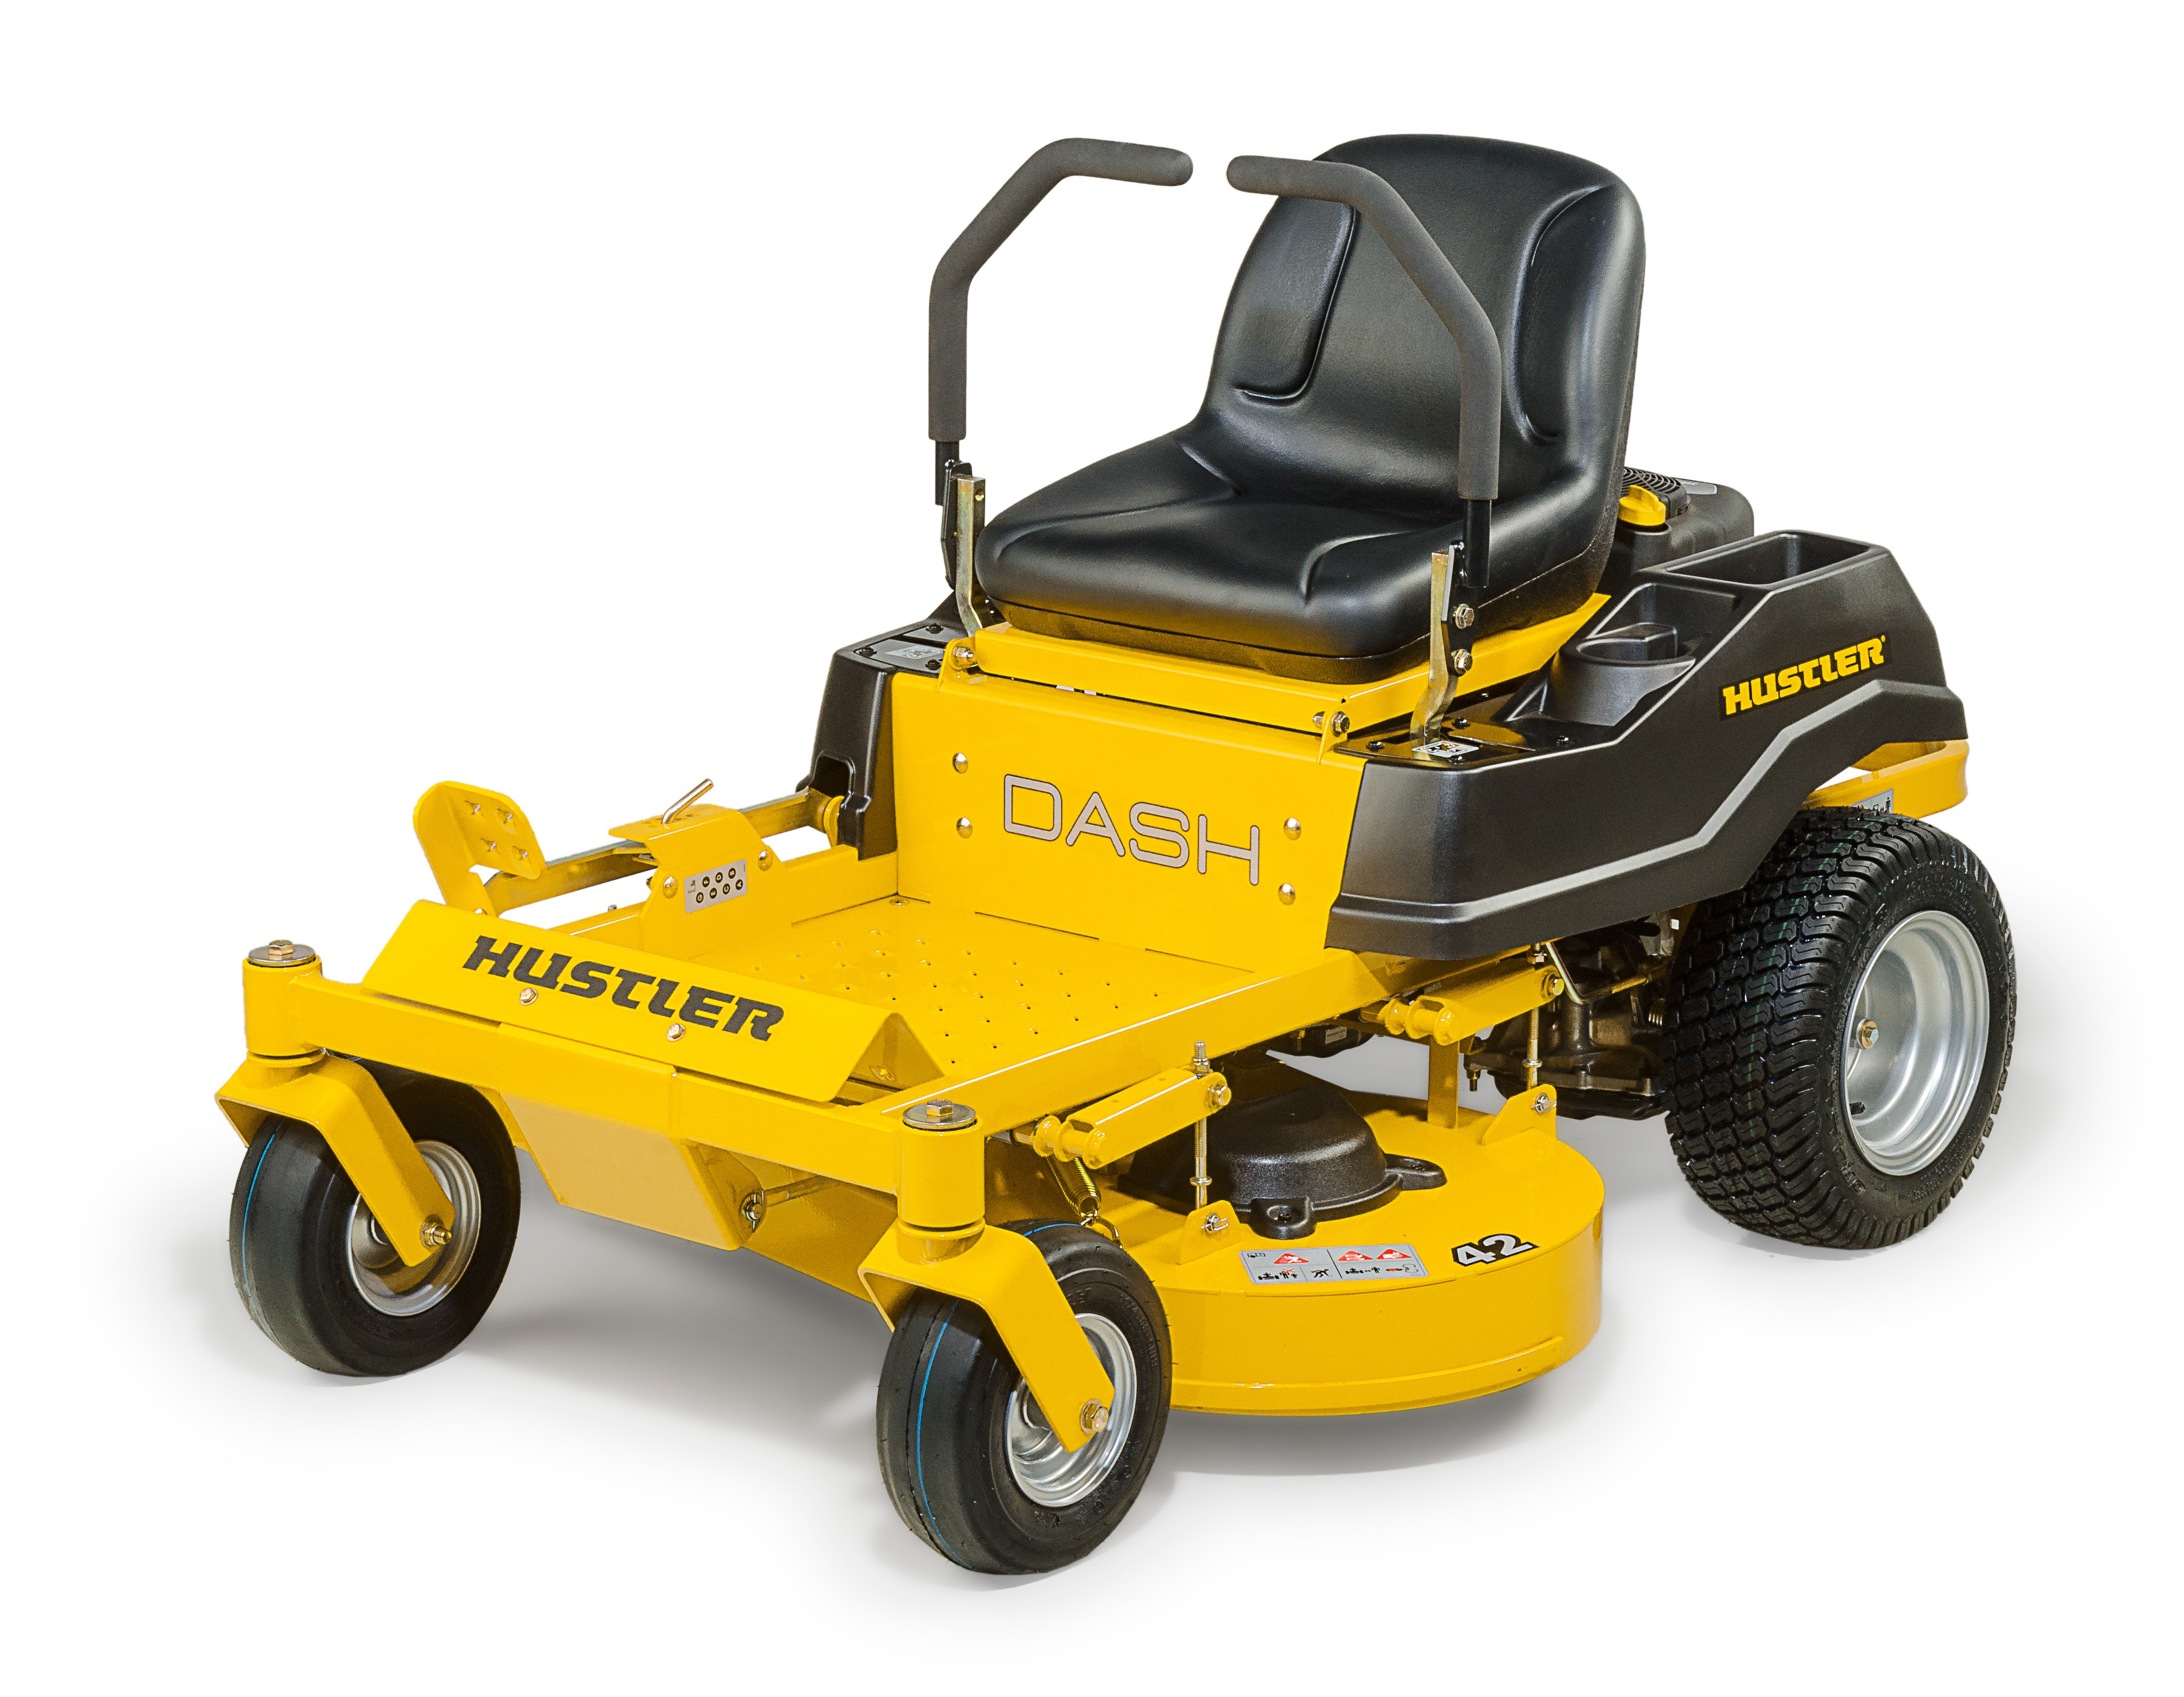 New, 2019, Hustler Turf Equipment, Dash, Lawn Mowers